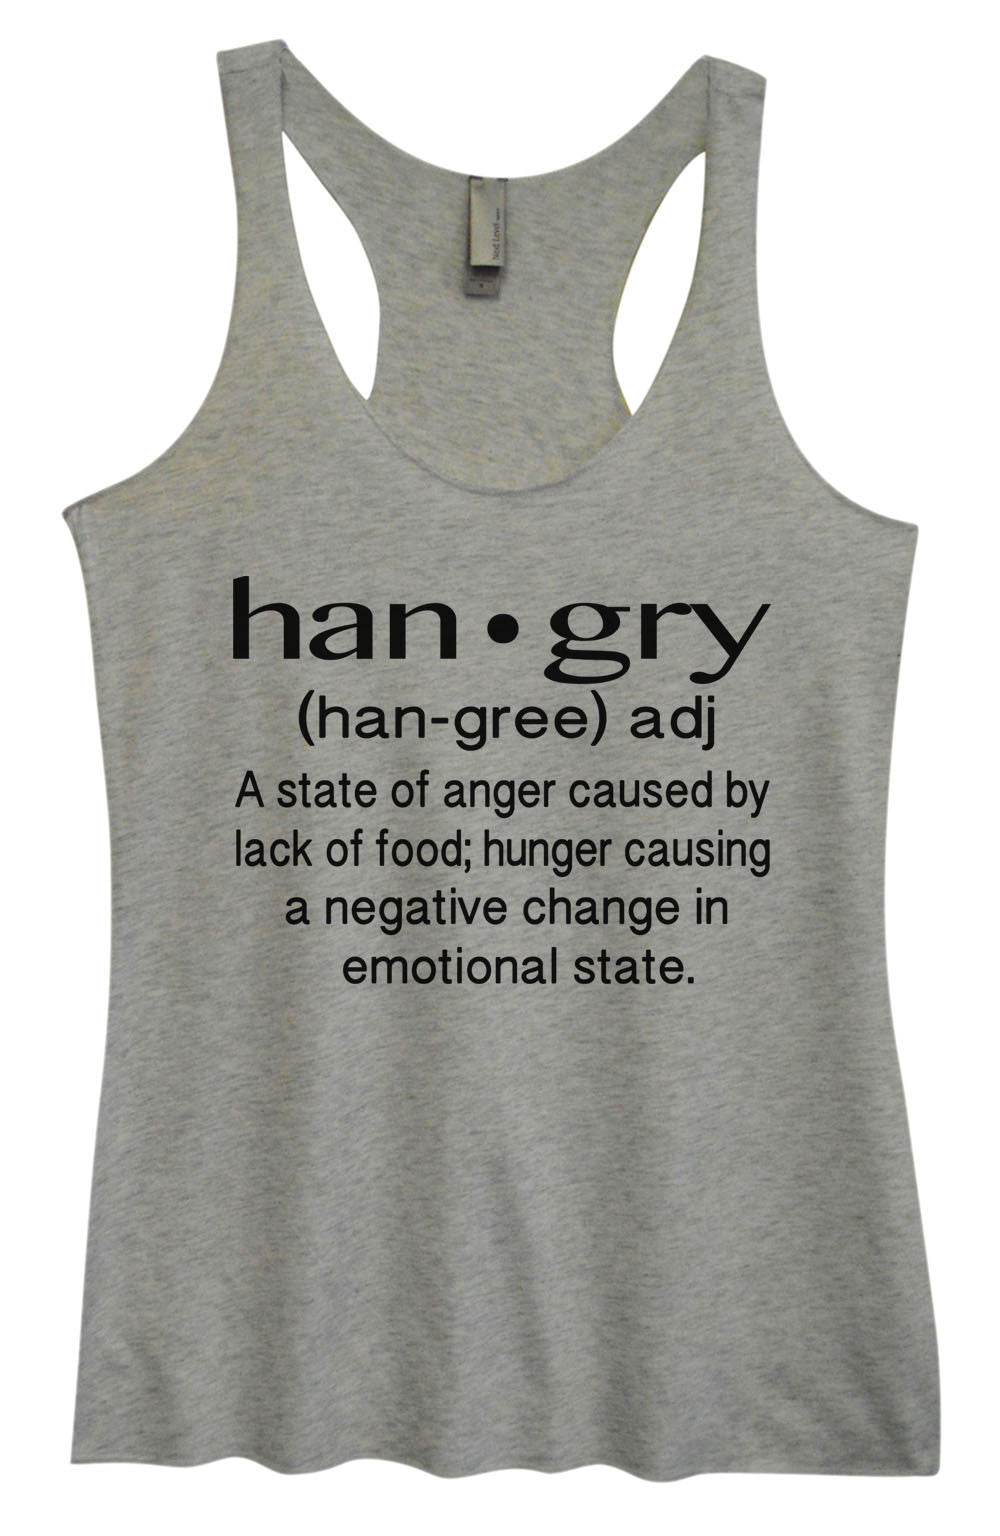 Womens Fashion Triblend Tank Top - Han.gry (Han-Gree) Adj A State Of Anger Caused By Lack Of Food; Hunger causing A Negative Change In Emotional State. - Tri-957 - Funny Shirts Tank Tops Burnouts and Triblends  - 2